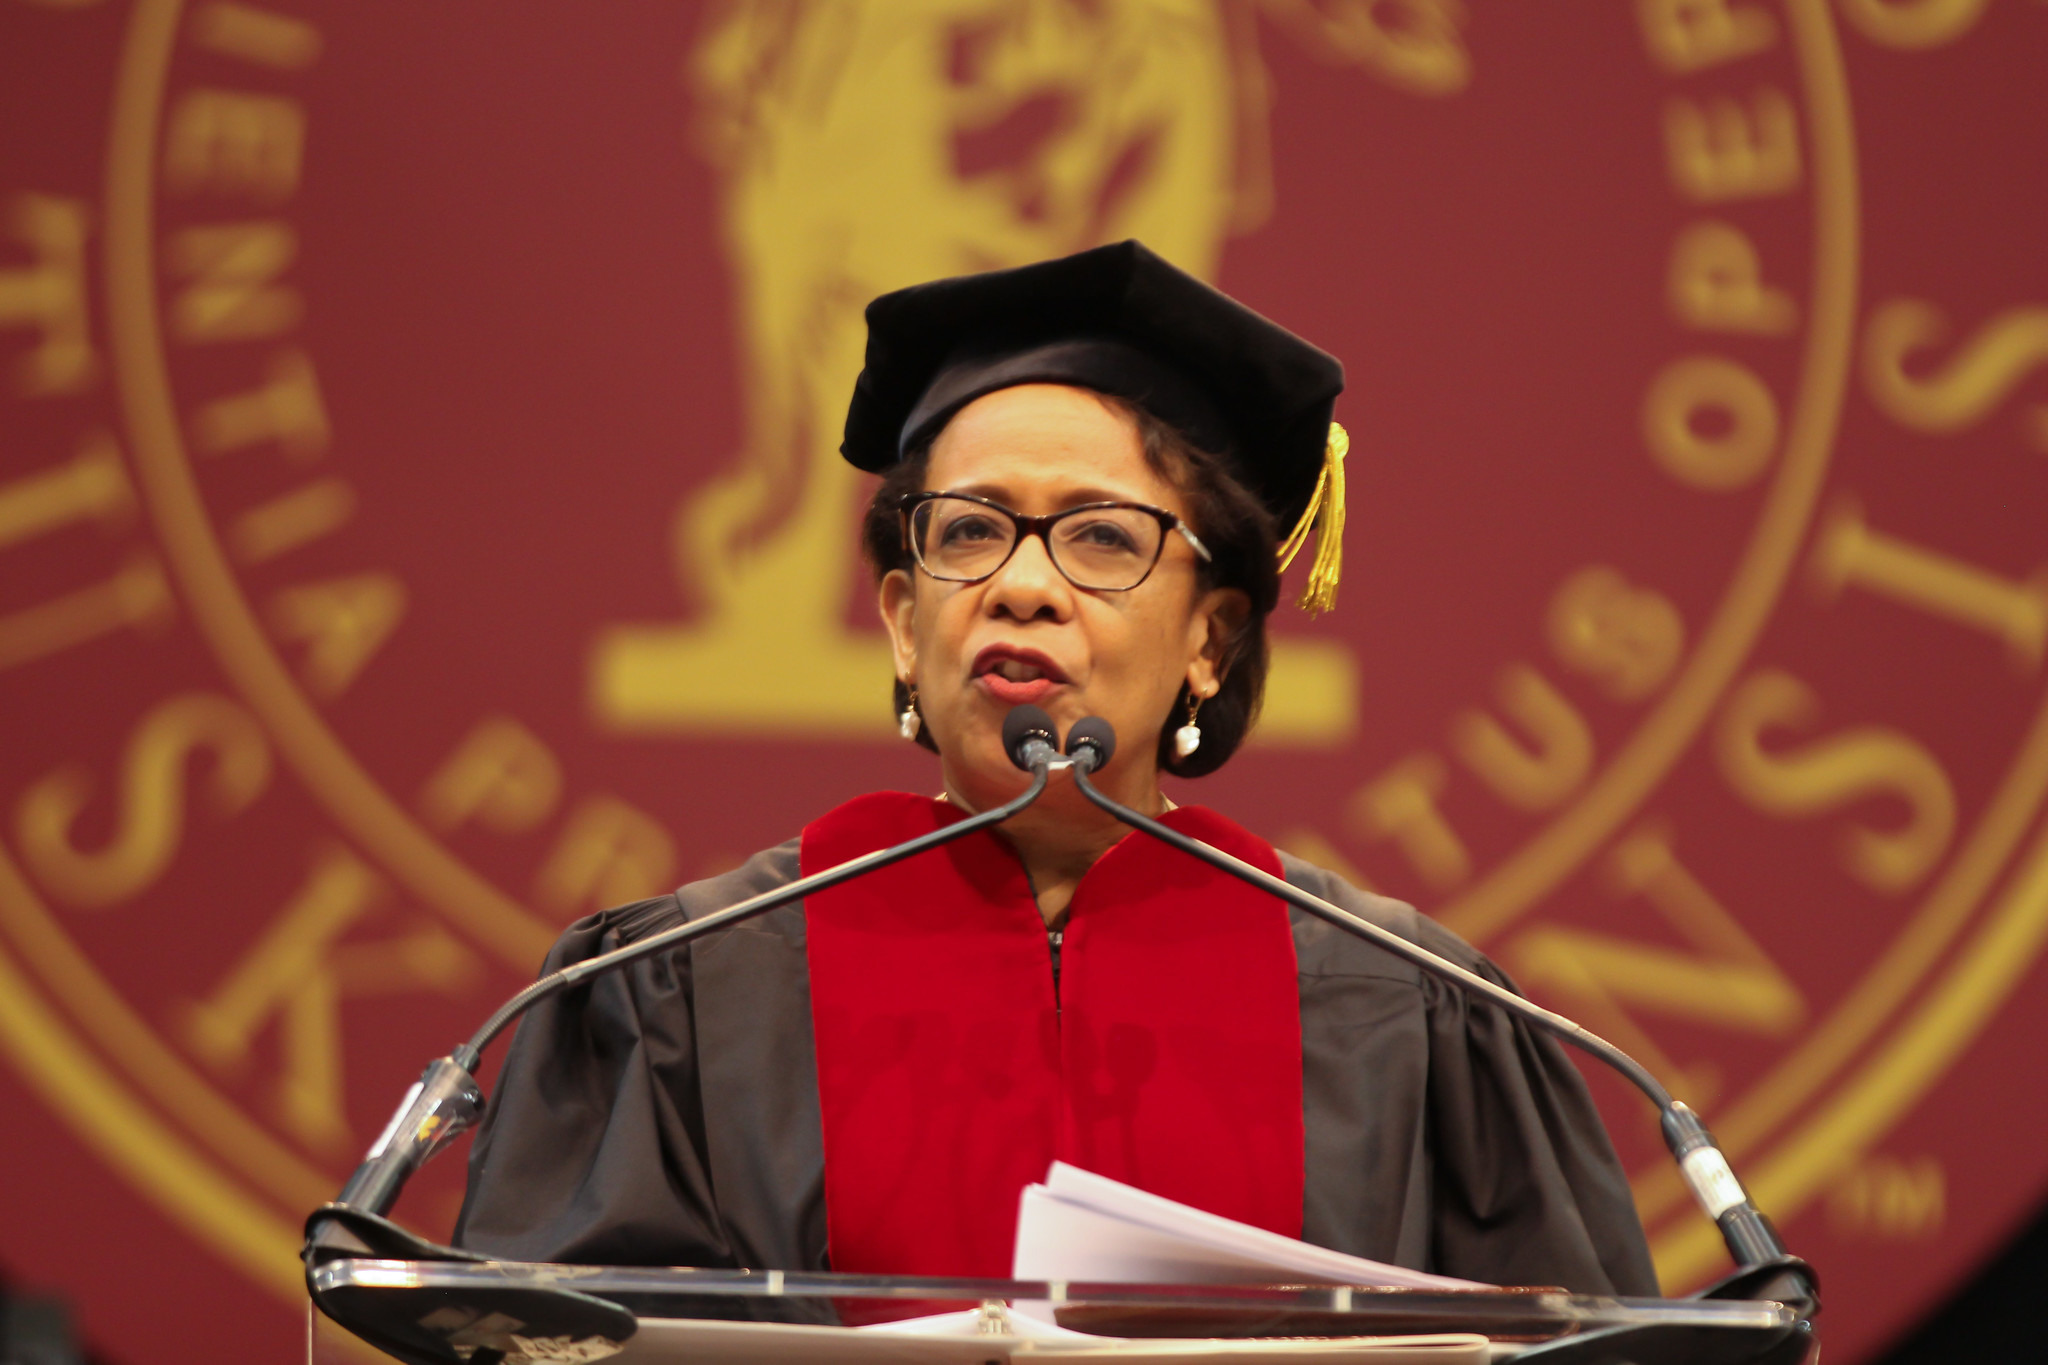 The Honorable Loretta Lynch, J.D. offers remarks to graduates.